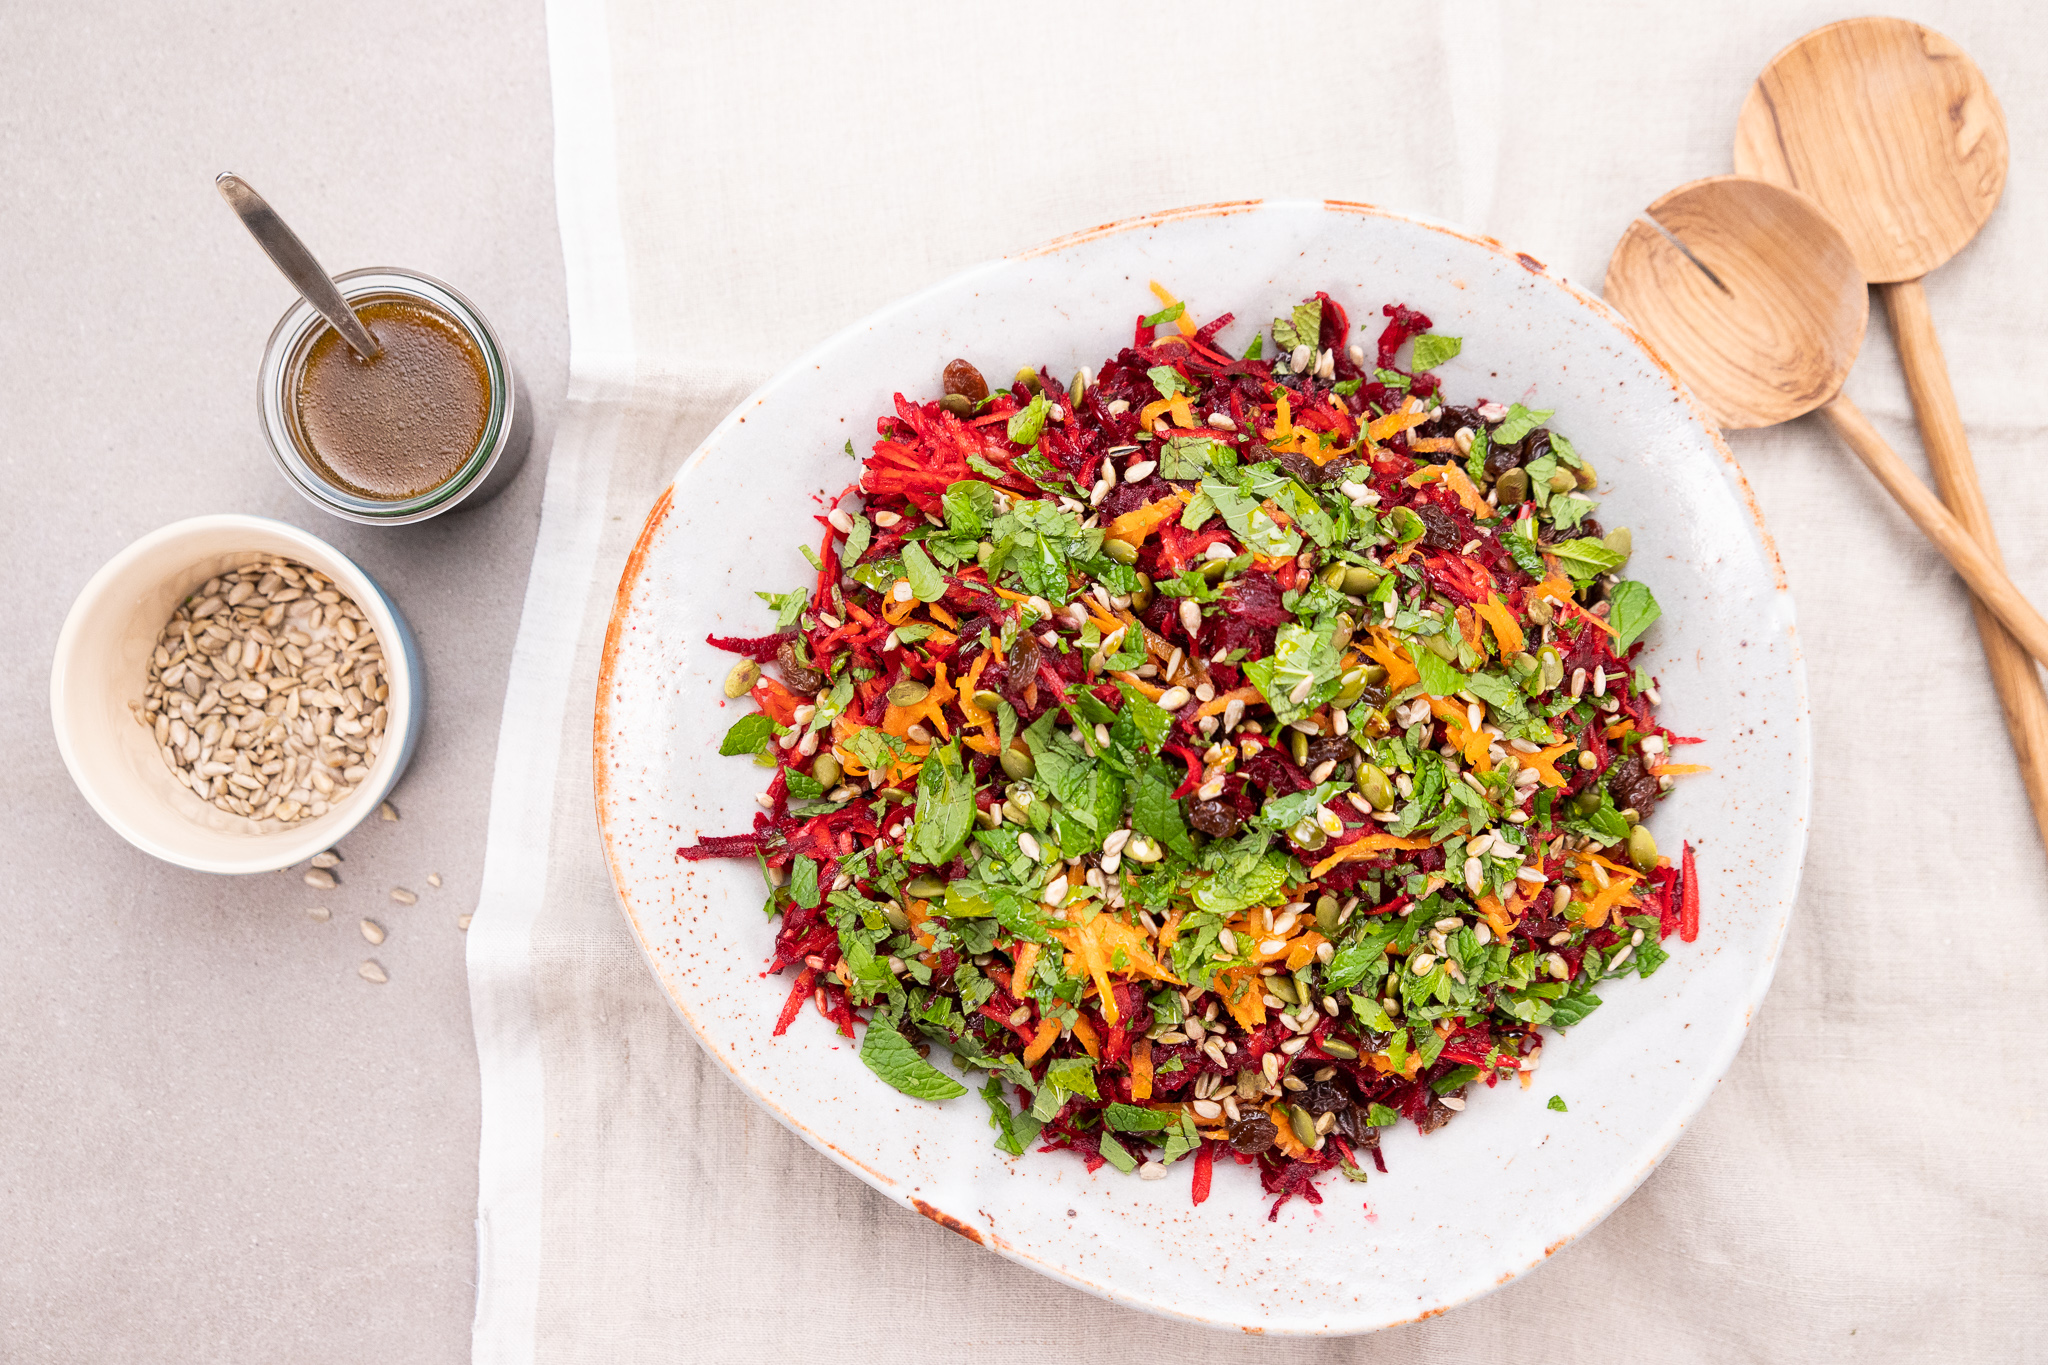 A colourful salad with greens carrot and beetroot sits on a white plate on a napkin